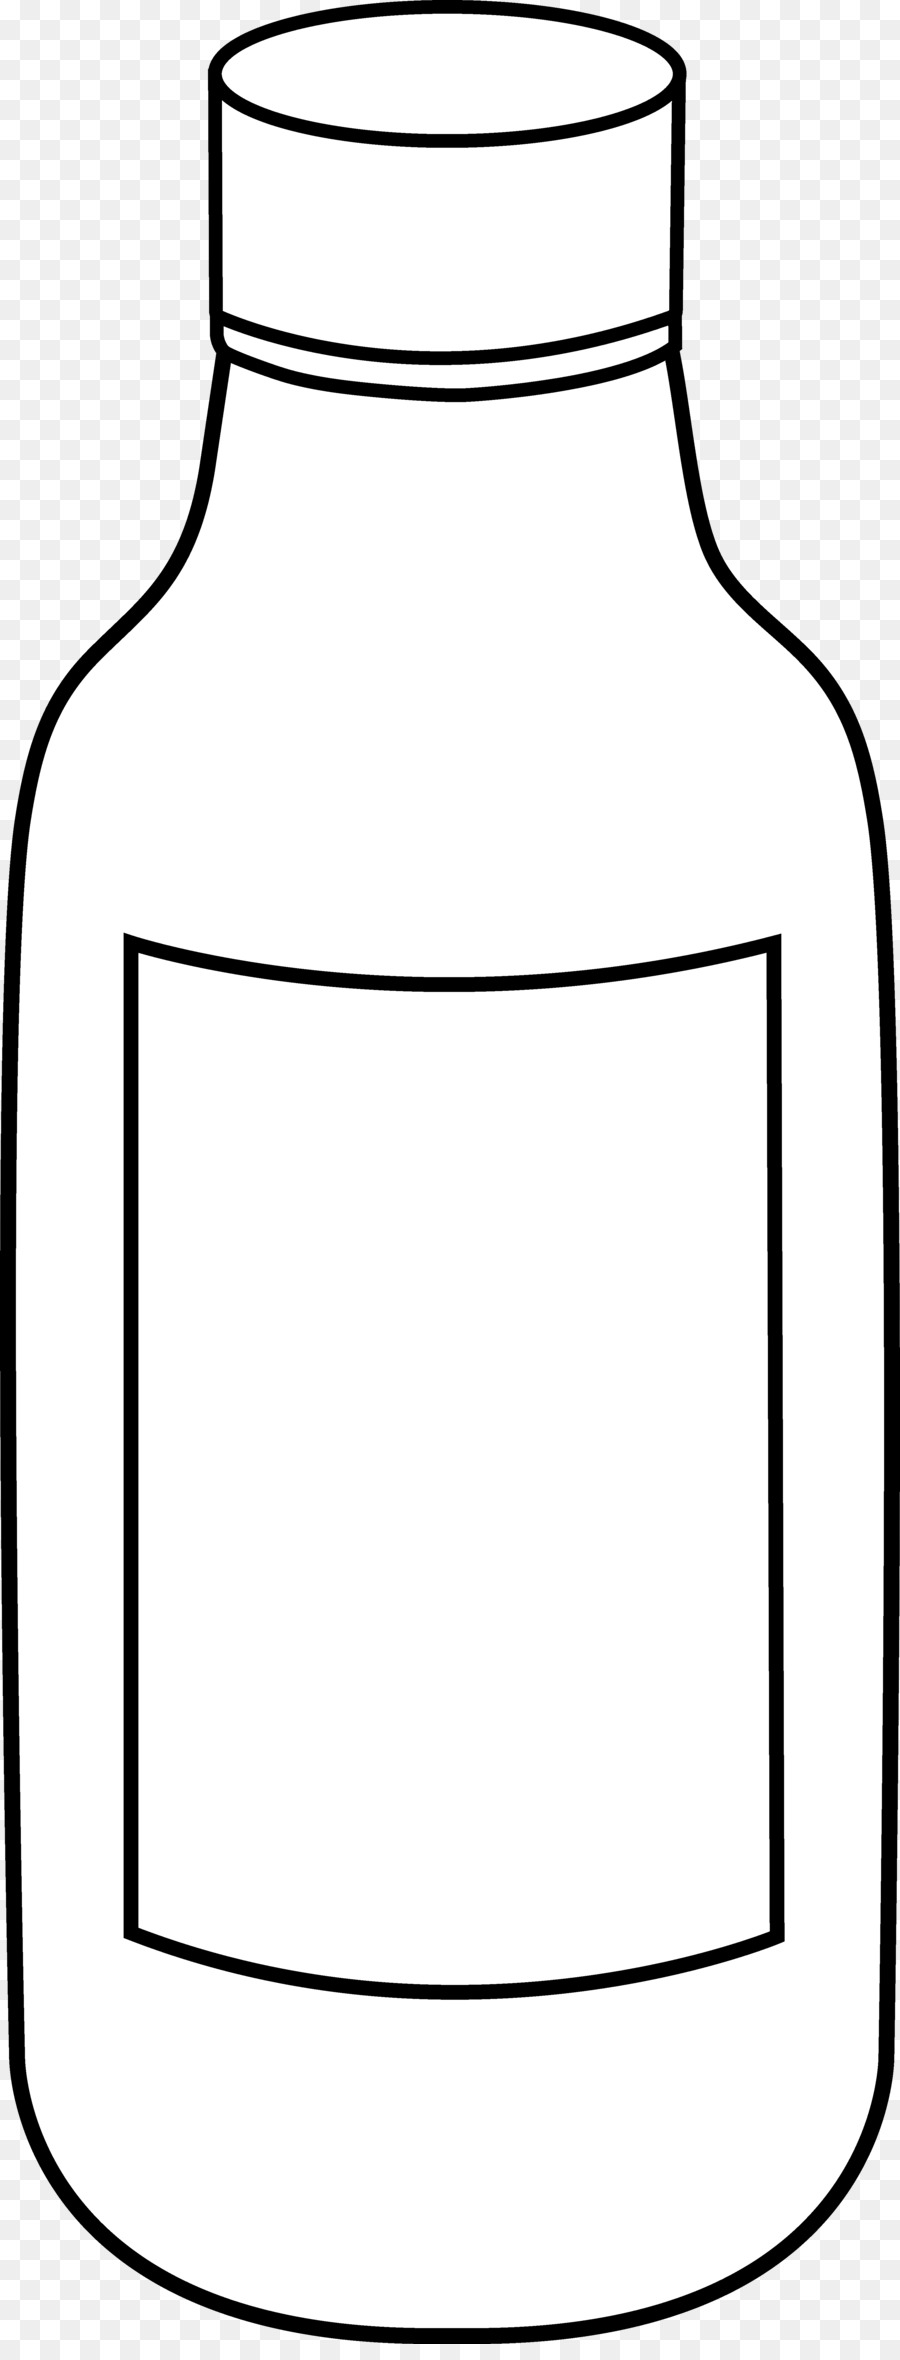 Line art black and. Bottle clipart drawing